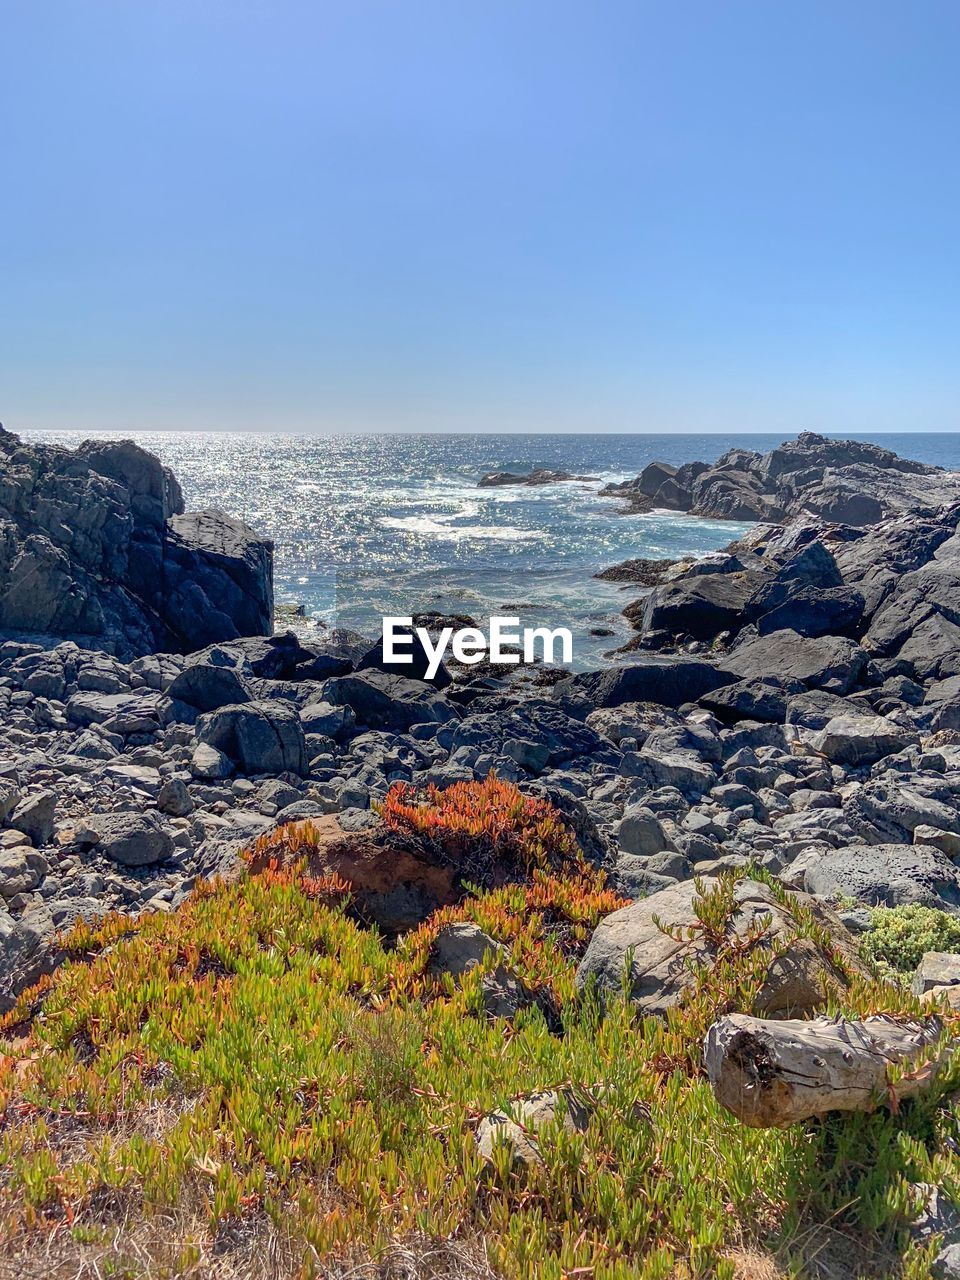 sea, sky, water, beauty in nature, scenics - nature, clear sky, land, rock, nature, rock - object, horizon, day, solid, horizon over water, no people, plant, copy space, beach, wave, outdoors, power in nature, rocky coastline